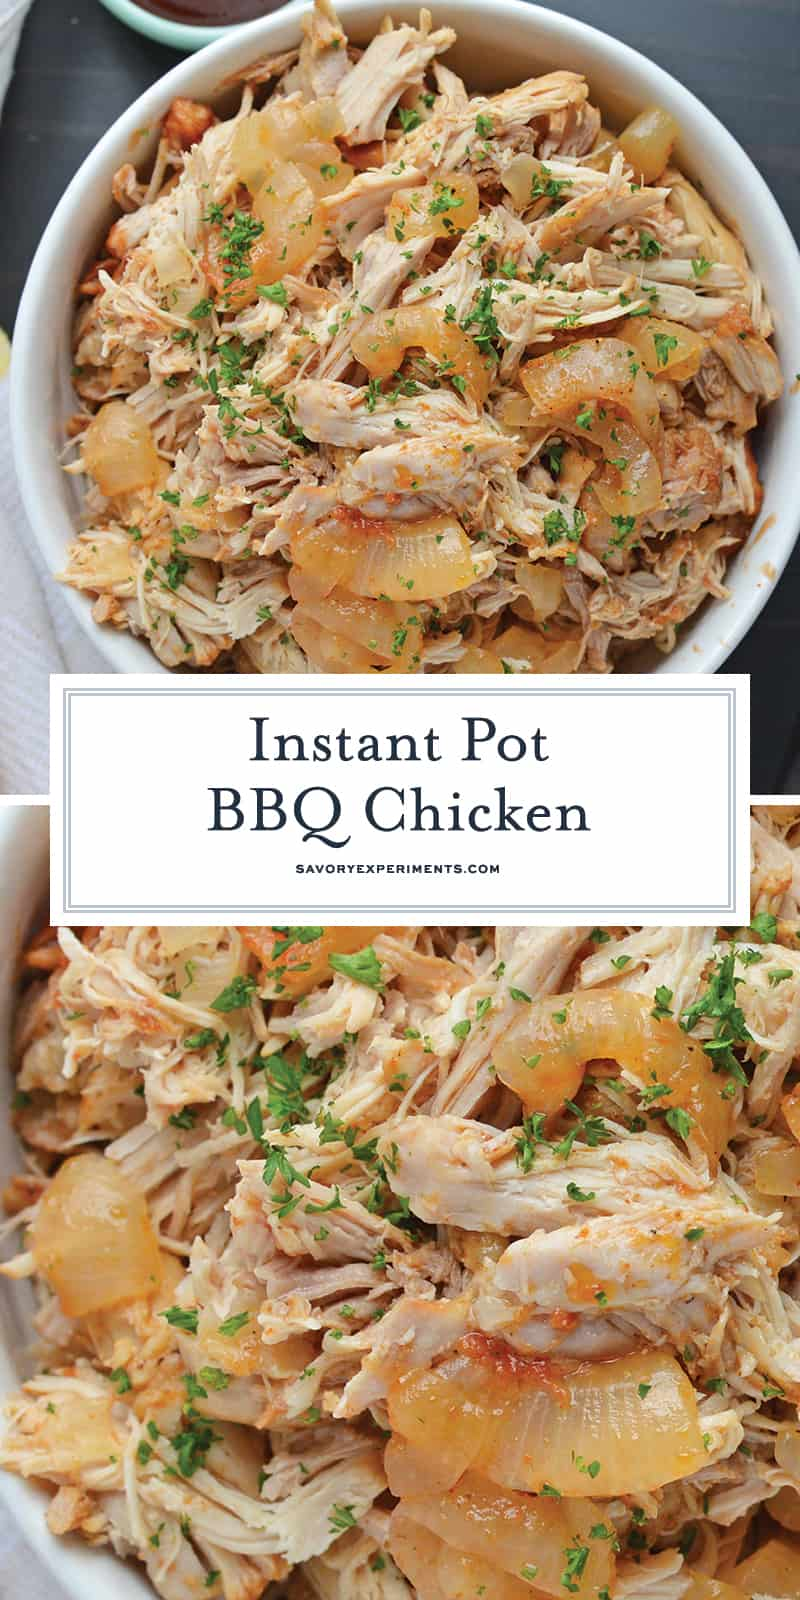 Instant Pot BBQ Chicken for Pinterest